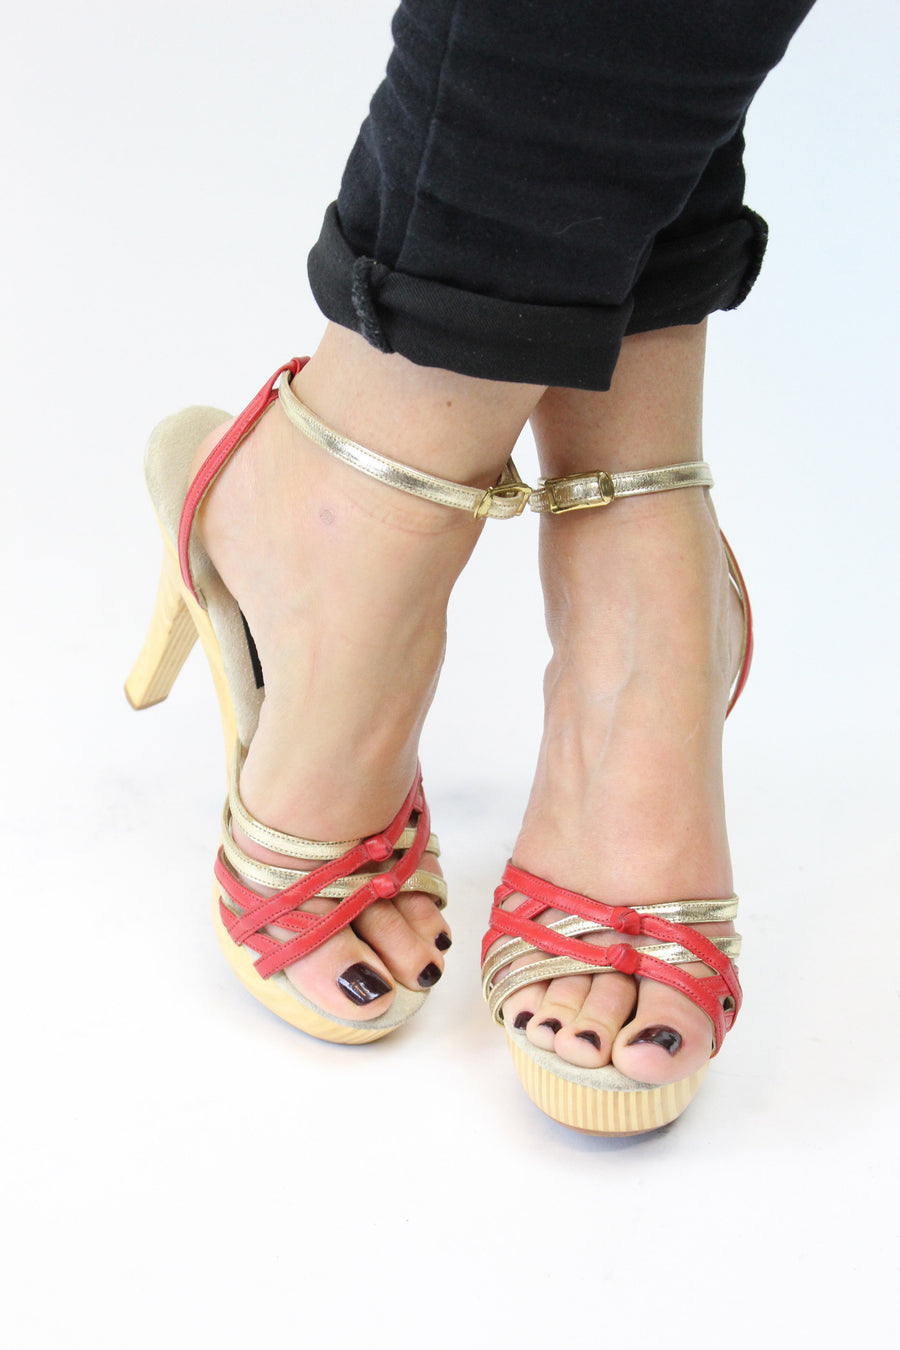 1970s wood platform heels | Naughty But Nice strappy sandals | size 6